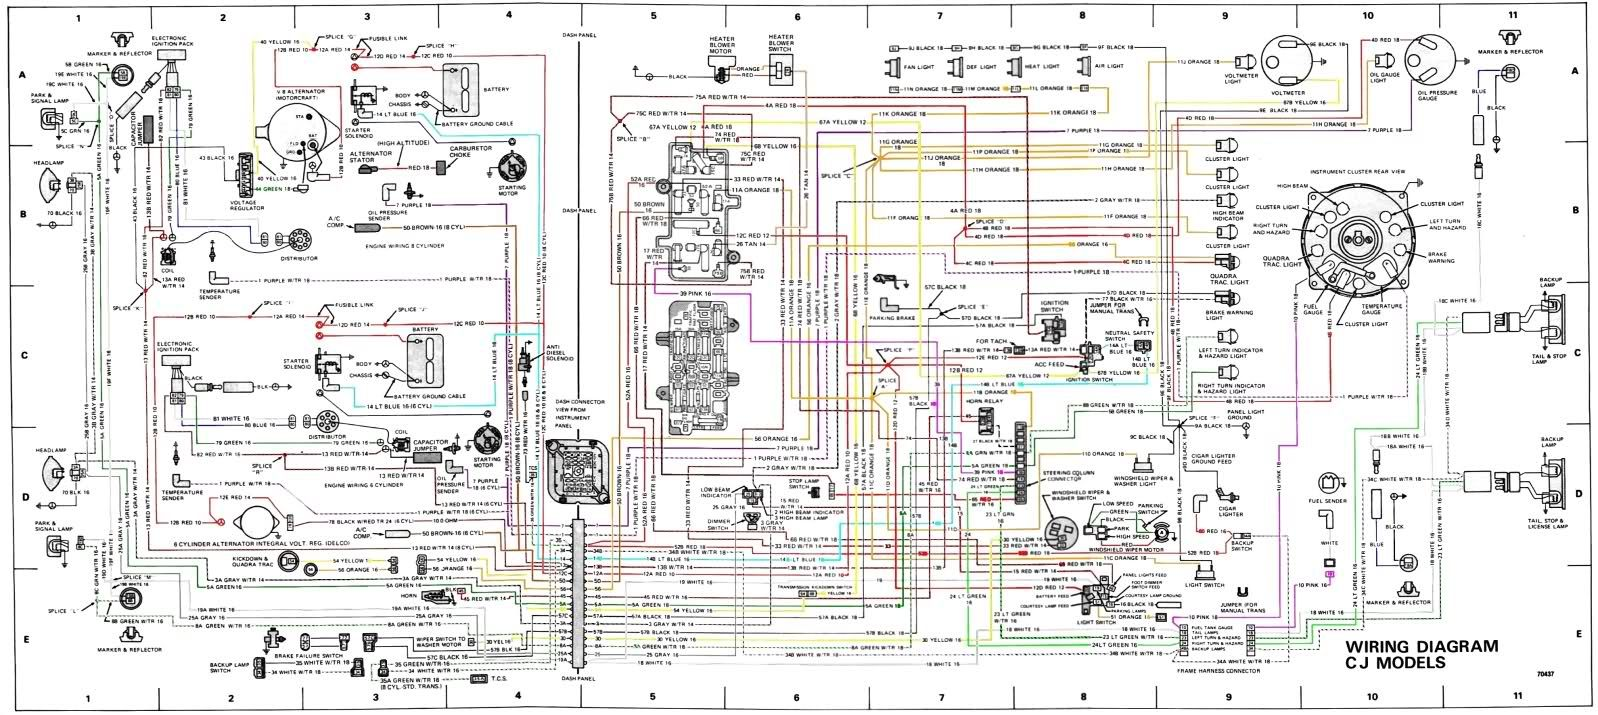 jeep cj7 wiring harness diagram 5 17 kenmo lp de \u2022cj jeep wire harness diagram wiring schematic diagram rh 143 twizer co 1986 jeep cj7 wiring